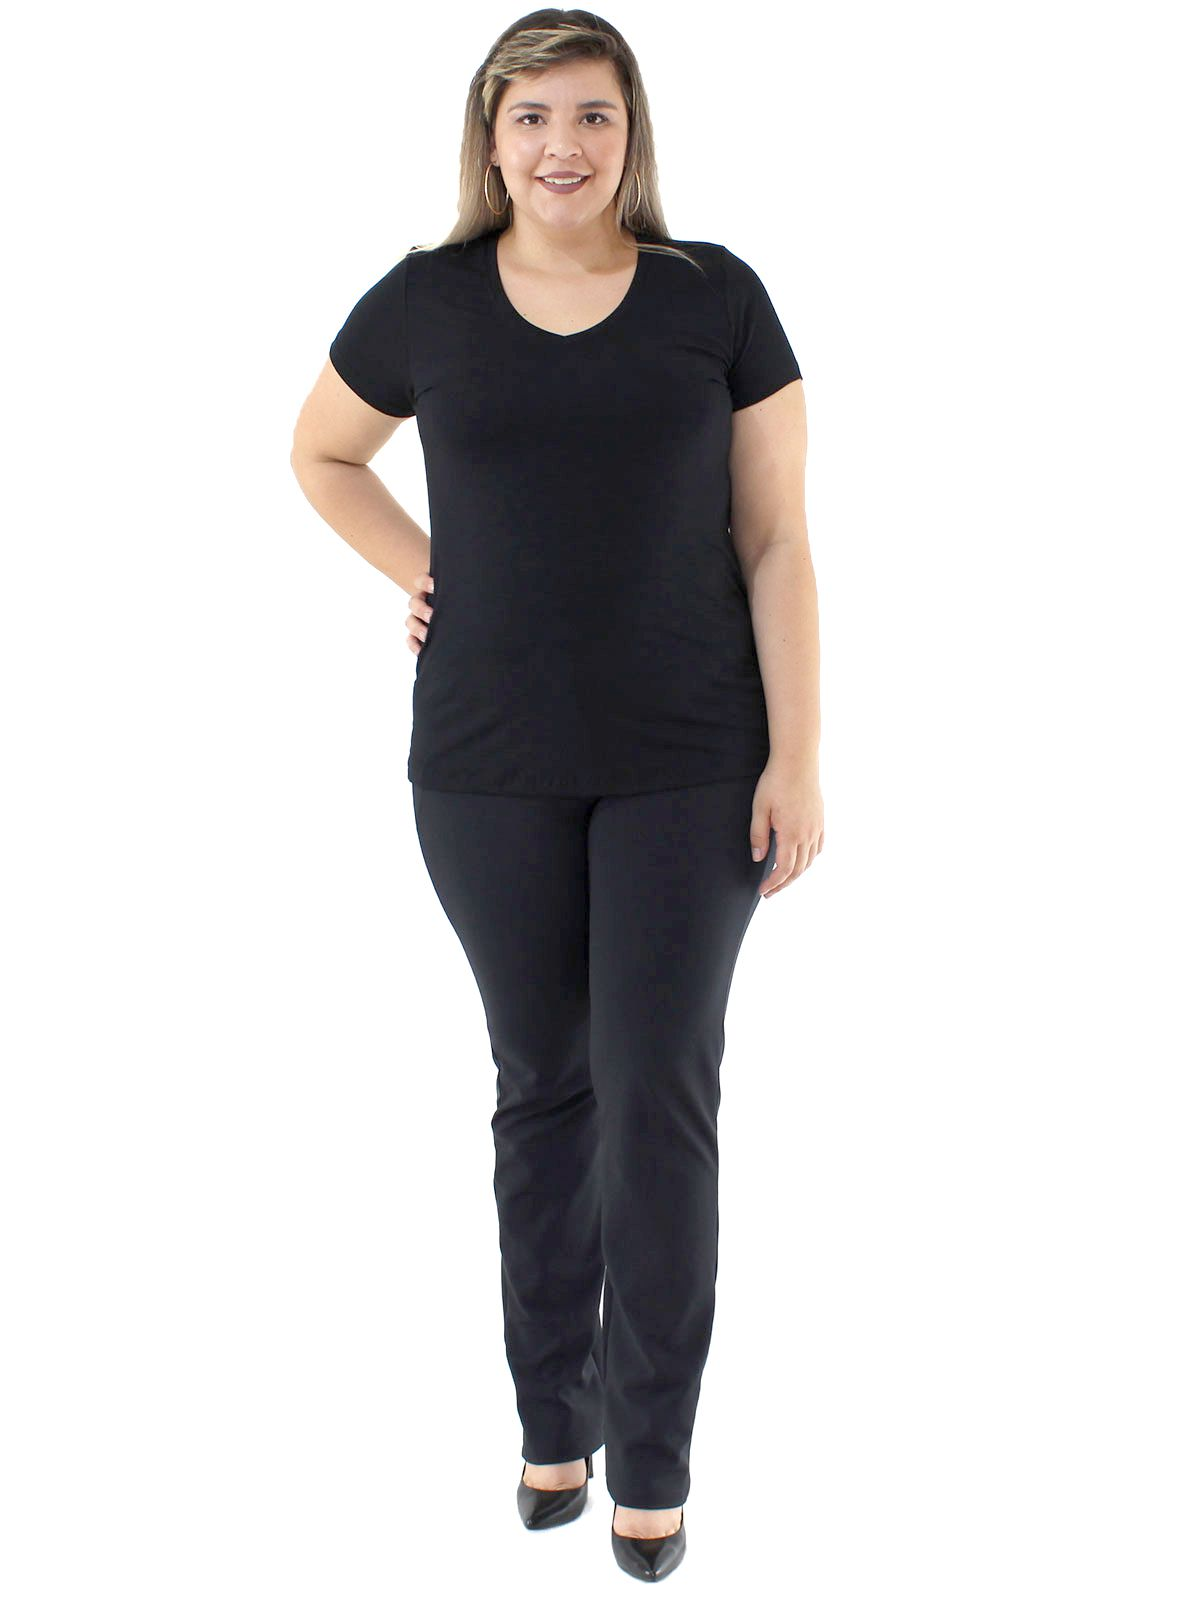 Blusa Plus Size KTS Visco Flame Decote V. Preto